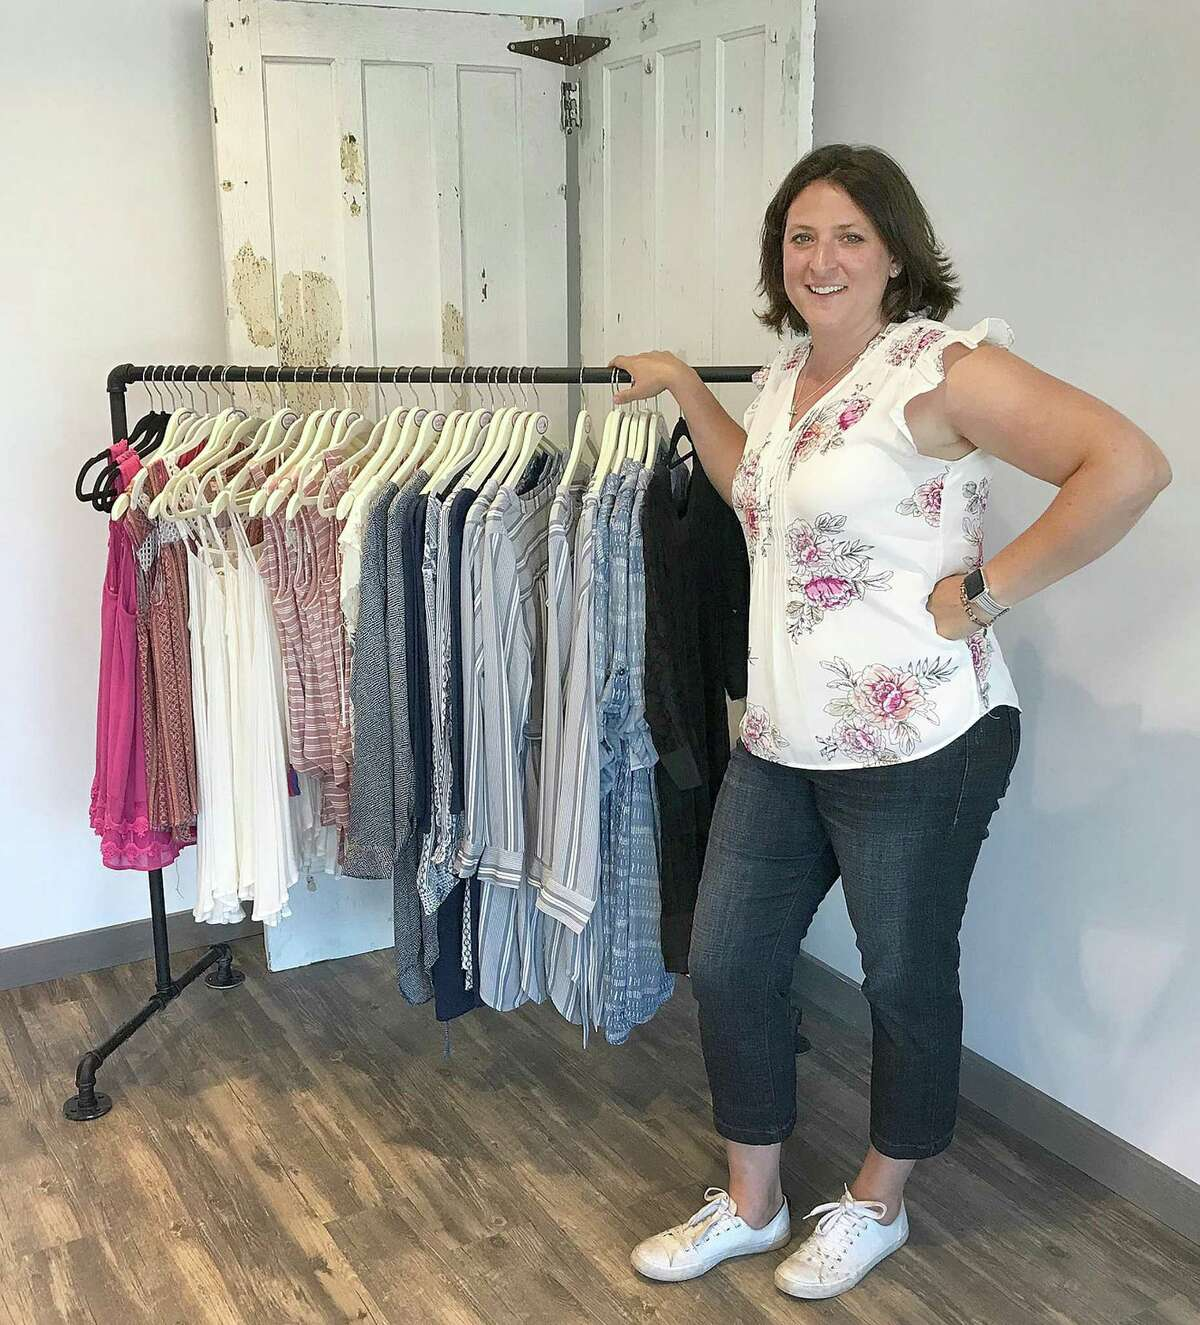 Bobbi Jo Beers of Traveling Chic Boutique stands in her new retail location in Brookfield Village in Brookfield, Conn., on Thursday, June 21, 2018.